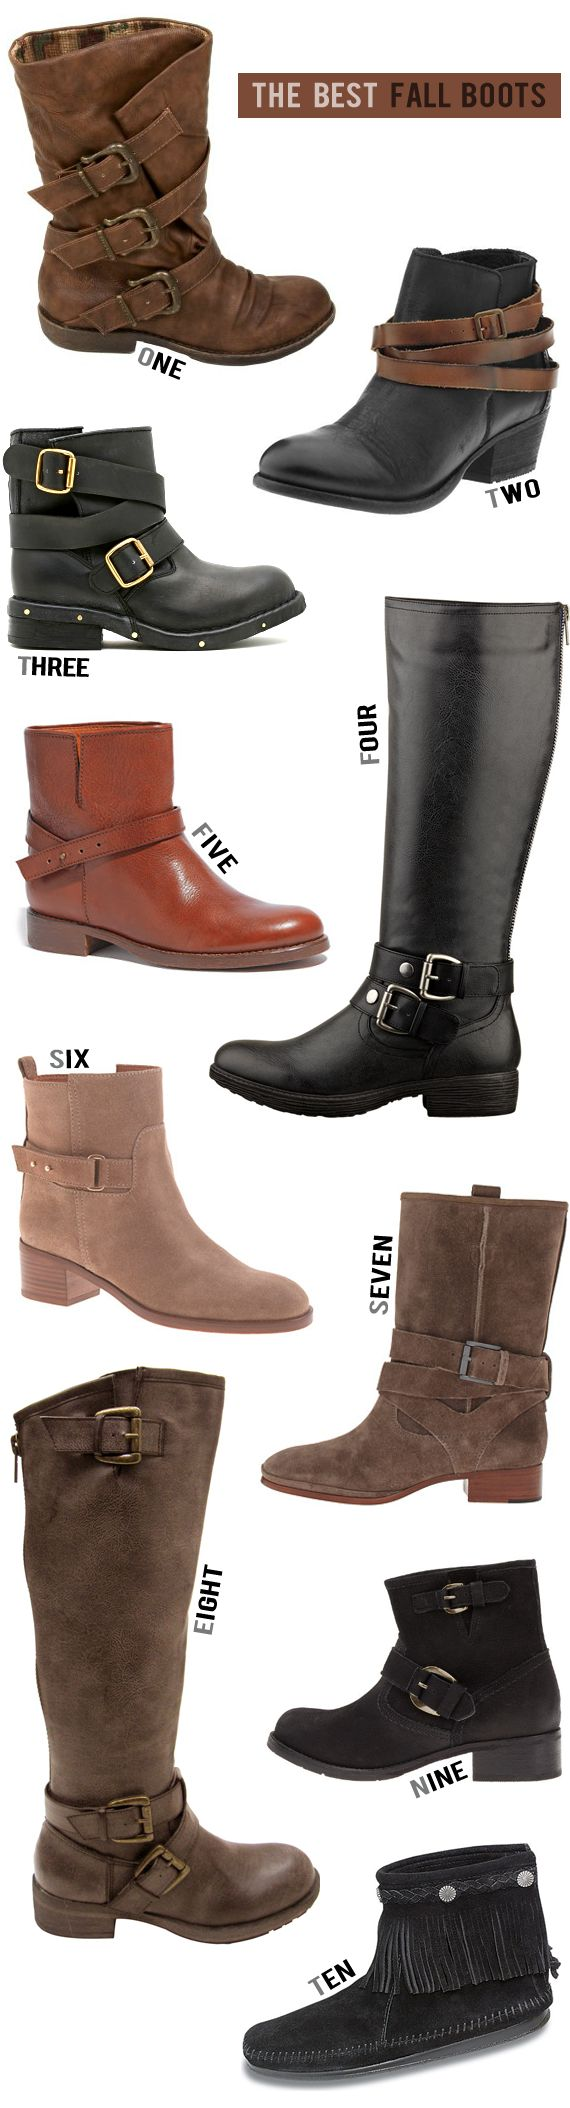 The 10 Best Boots for Fall 2013 - I am a Boot Fanatic!!!